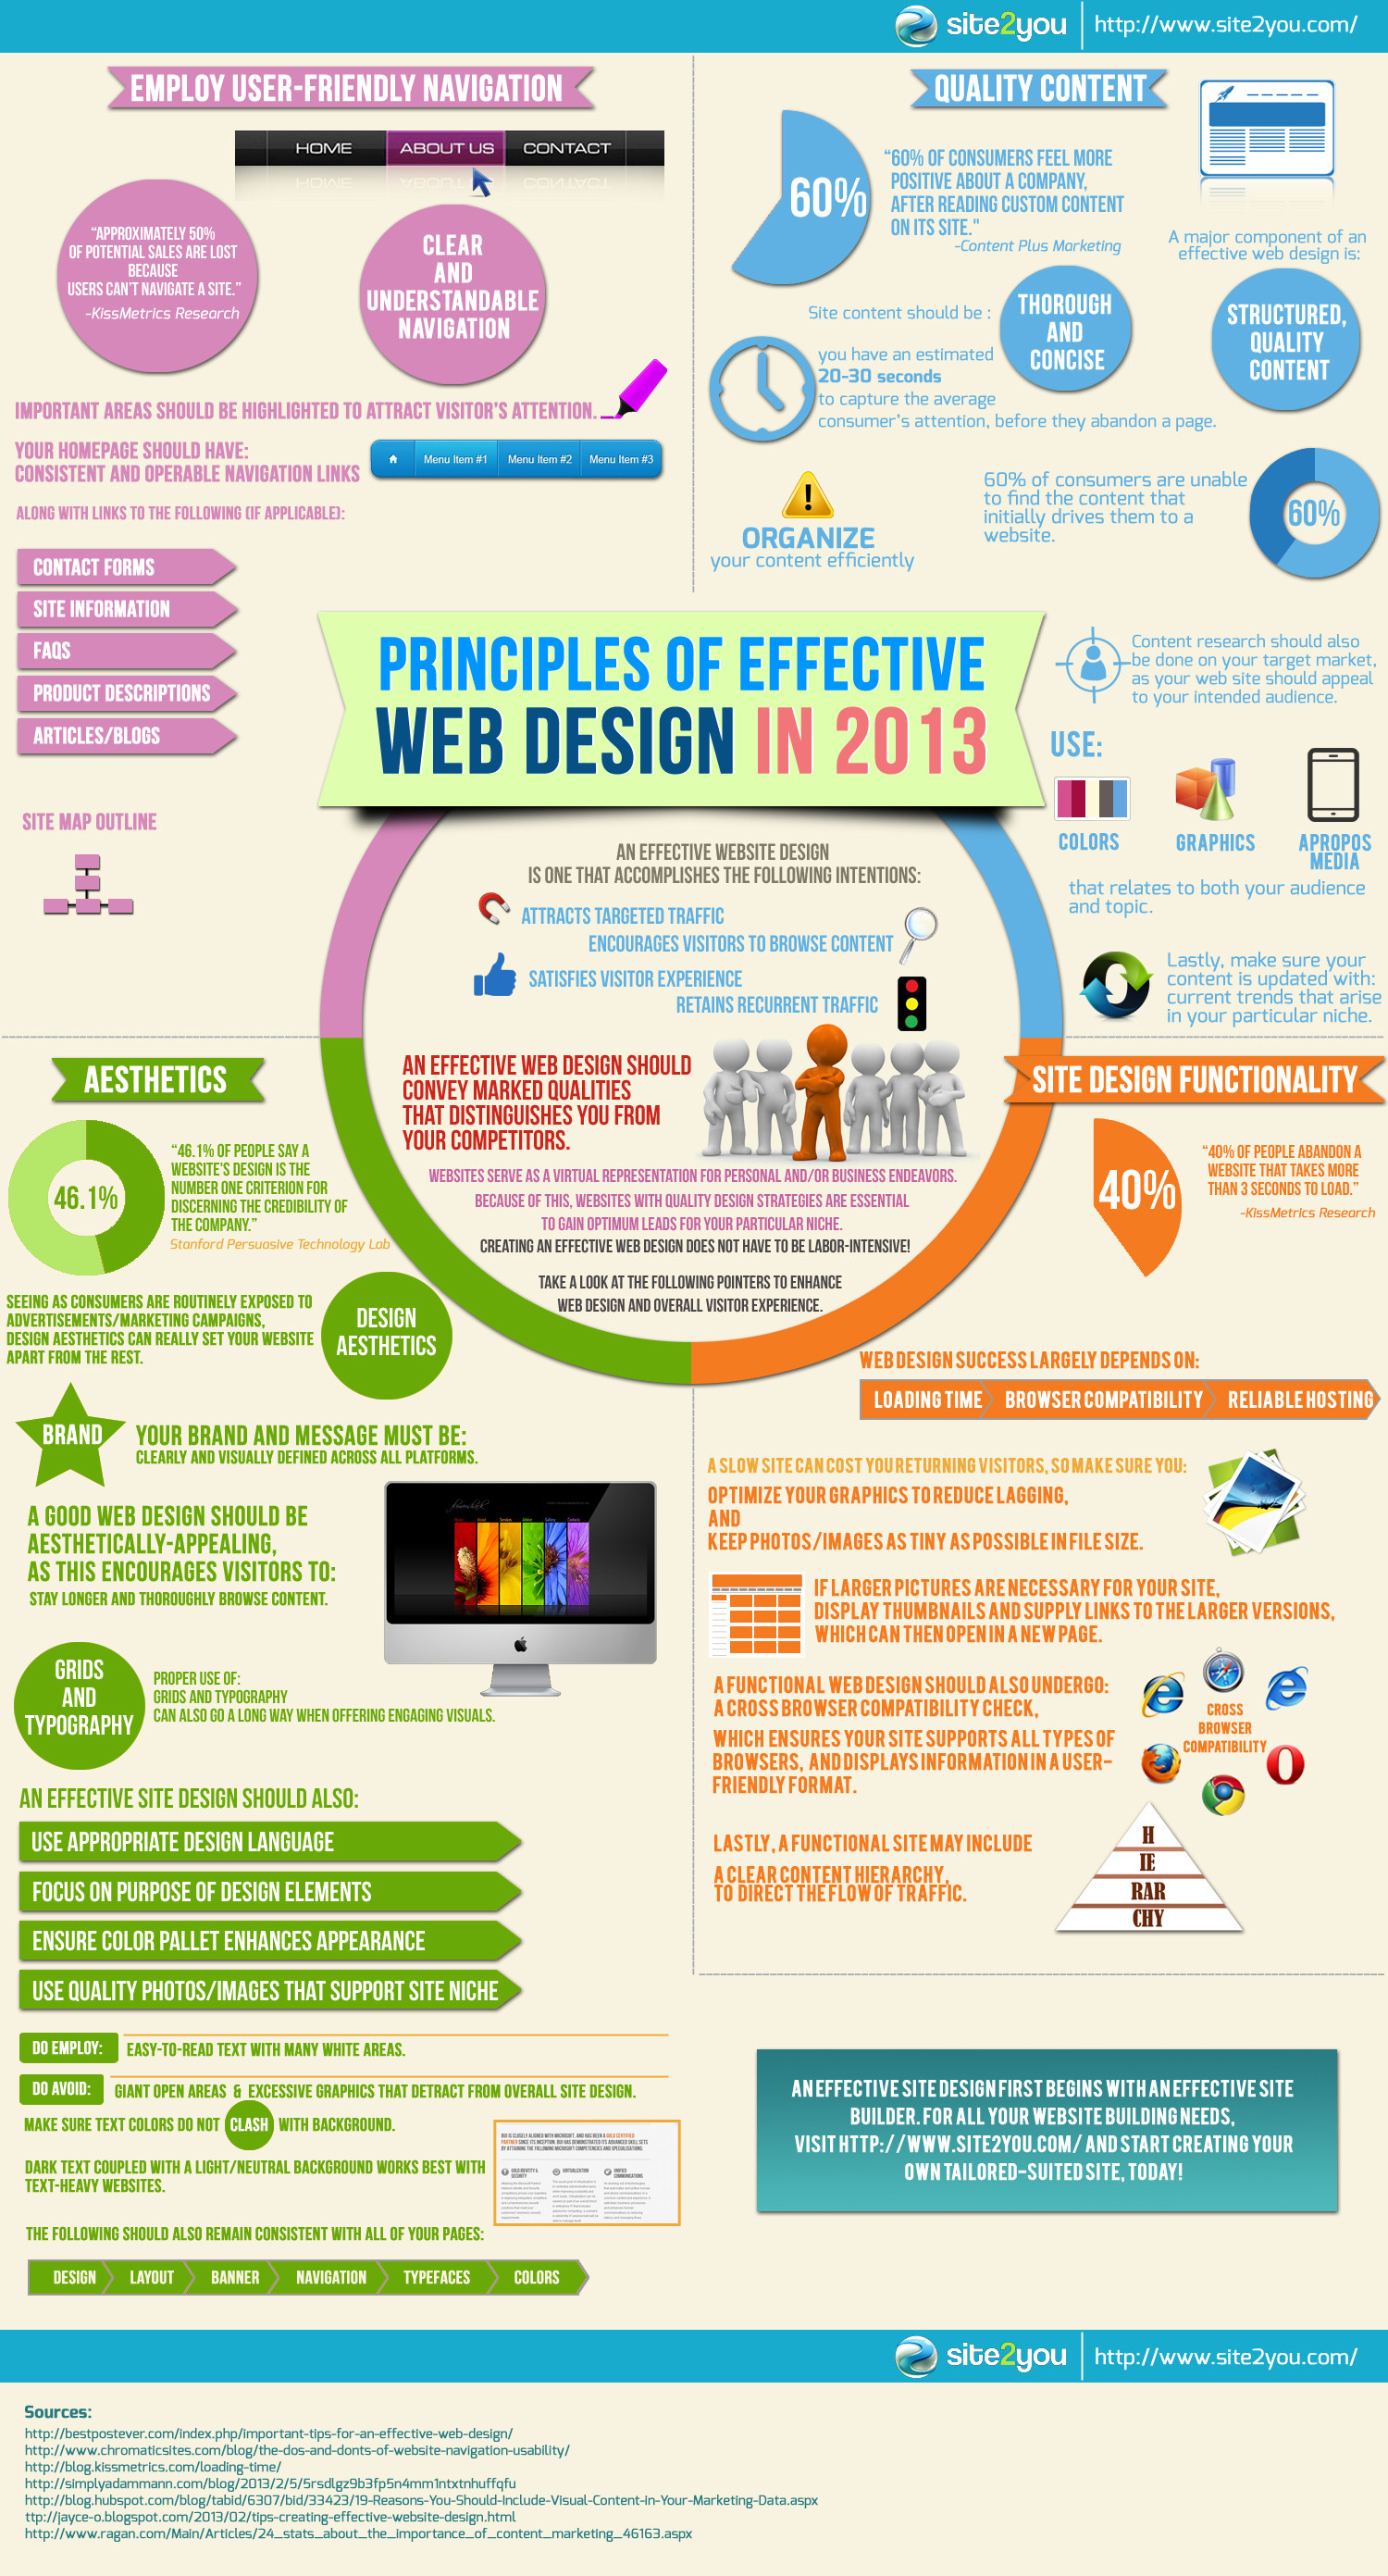 Principles of Efffective Web Design in 2013 Infographic